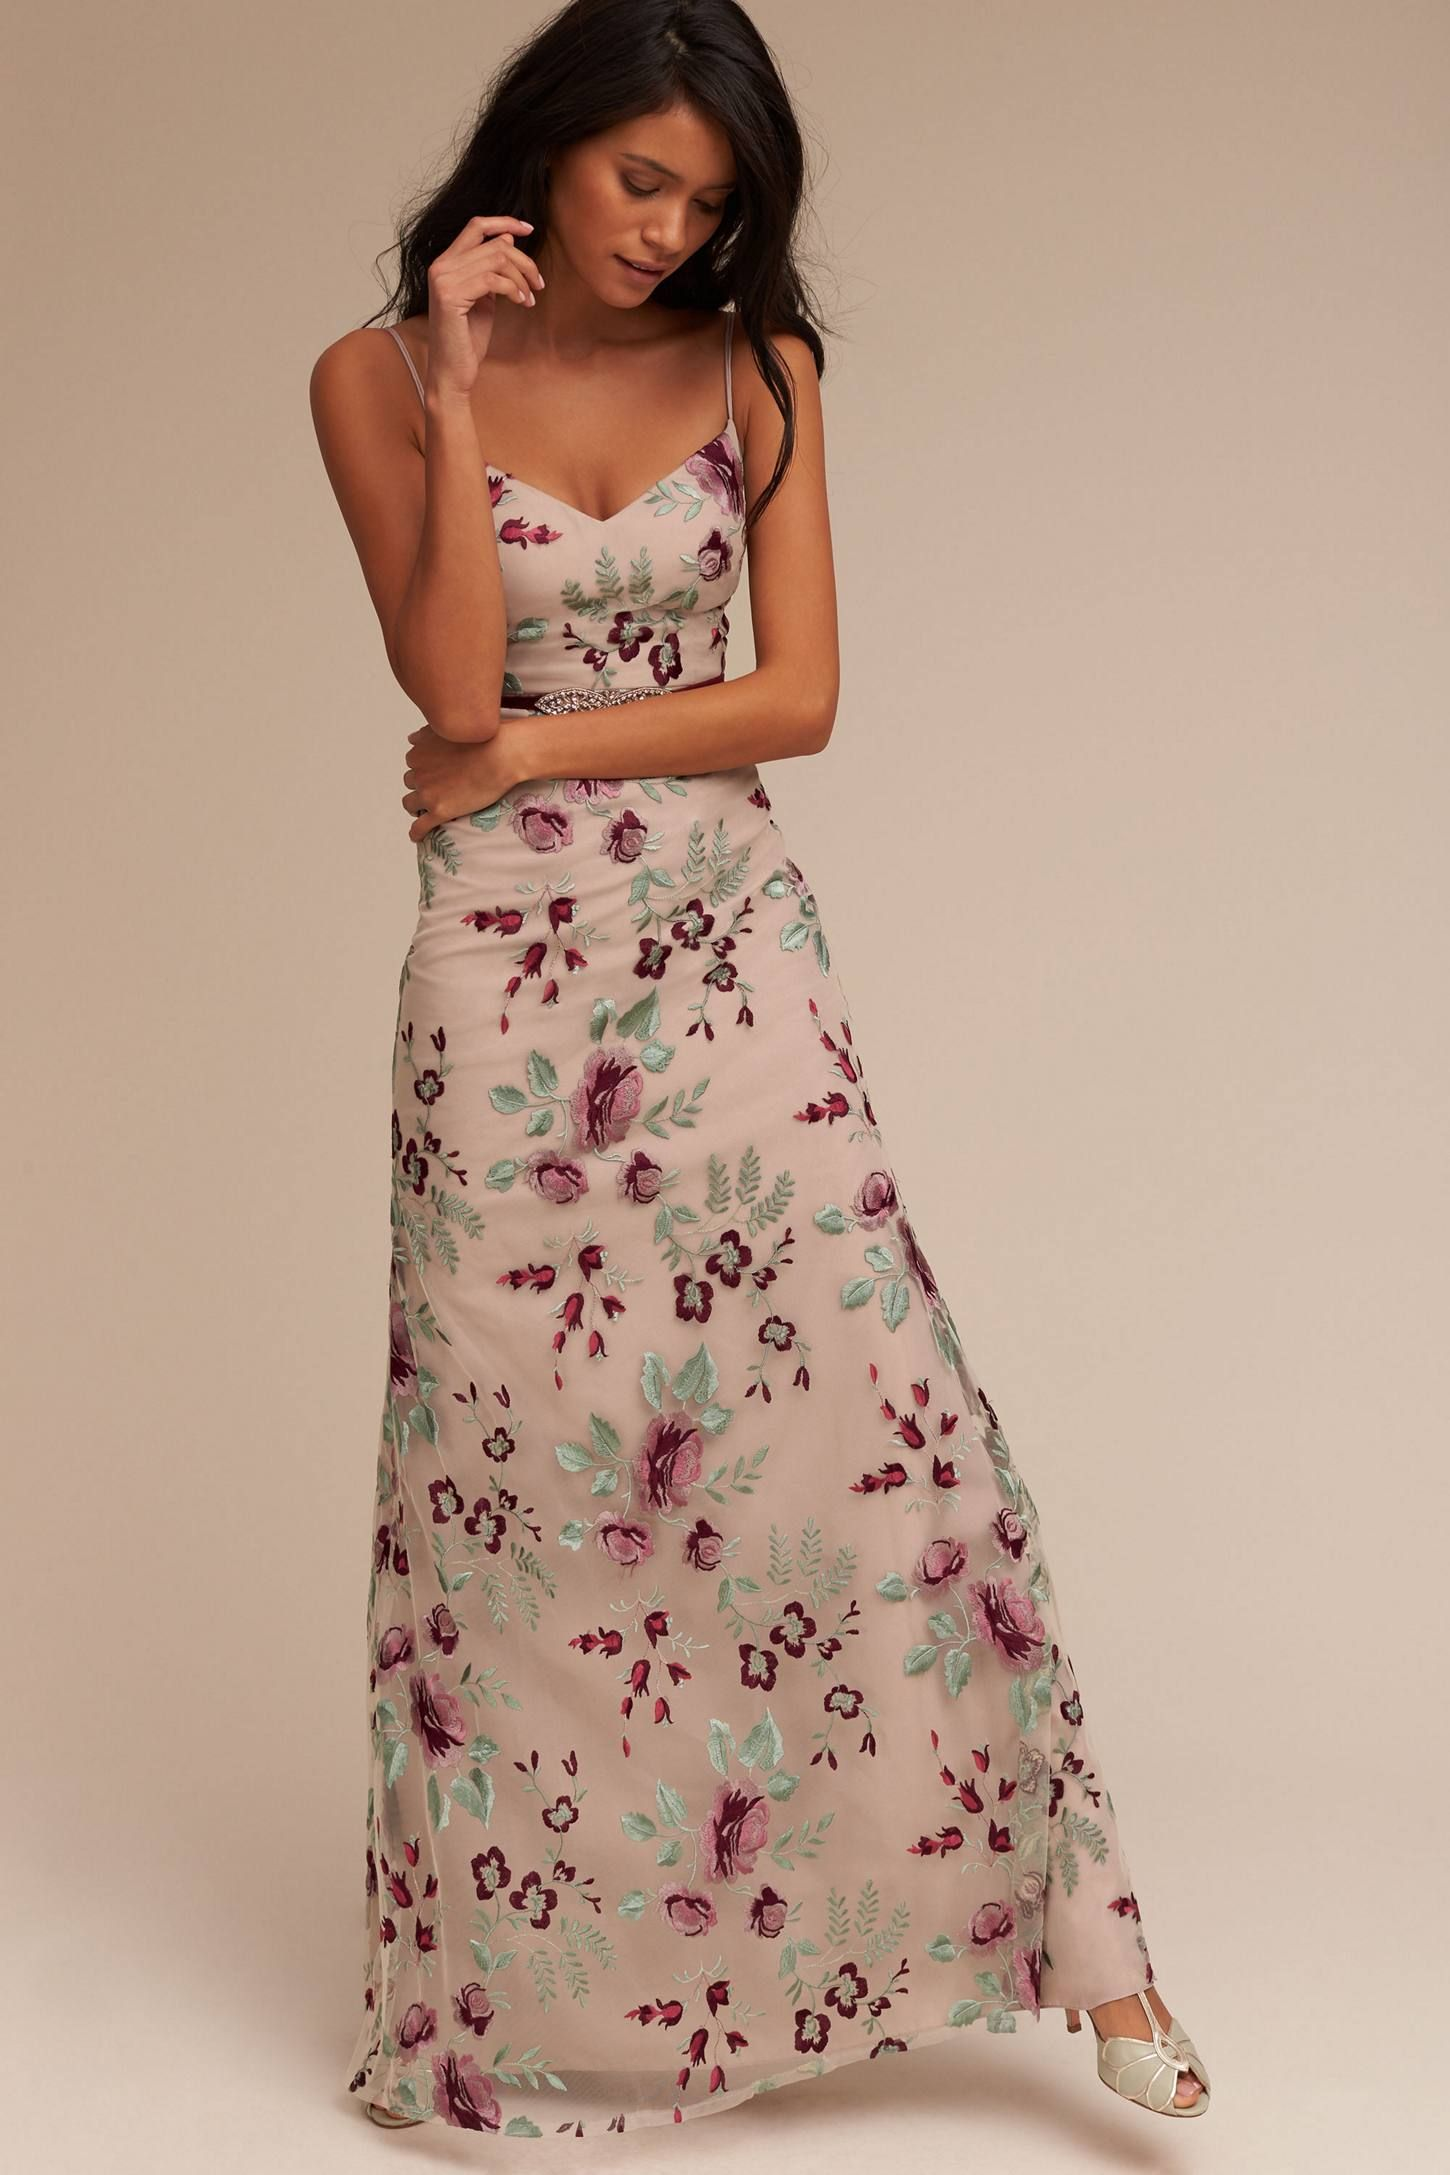 Lilias Dress | Anthropologie, Wedding guest attire and Beautiful clothes